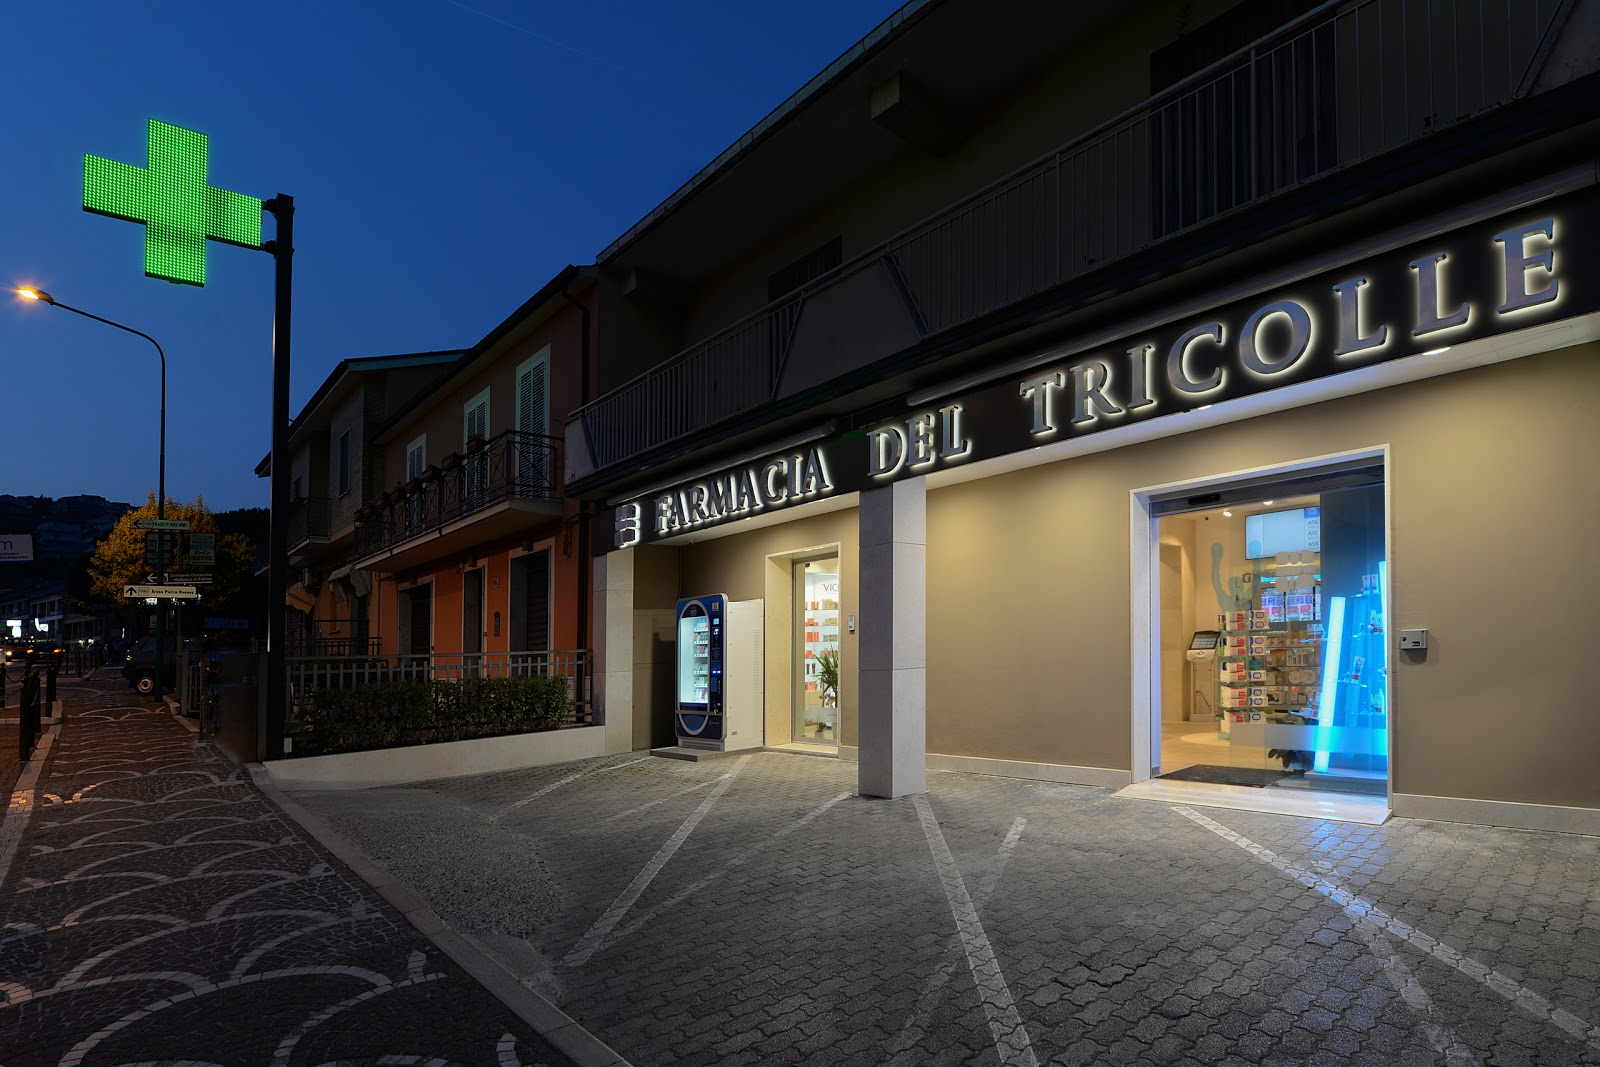 Farmacia del Tricolle s.a.s - photo